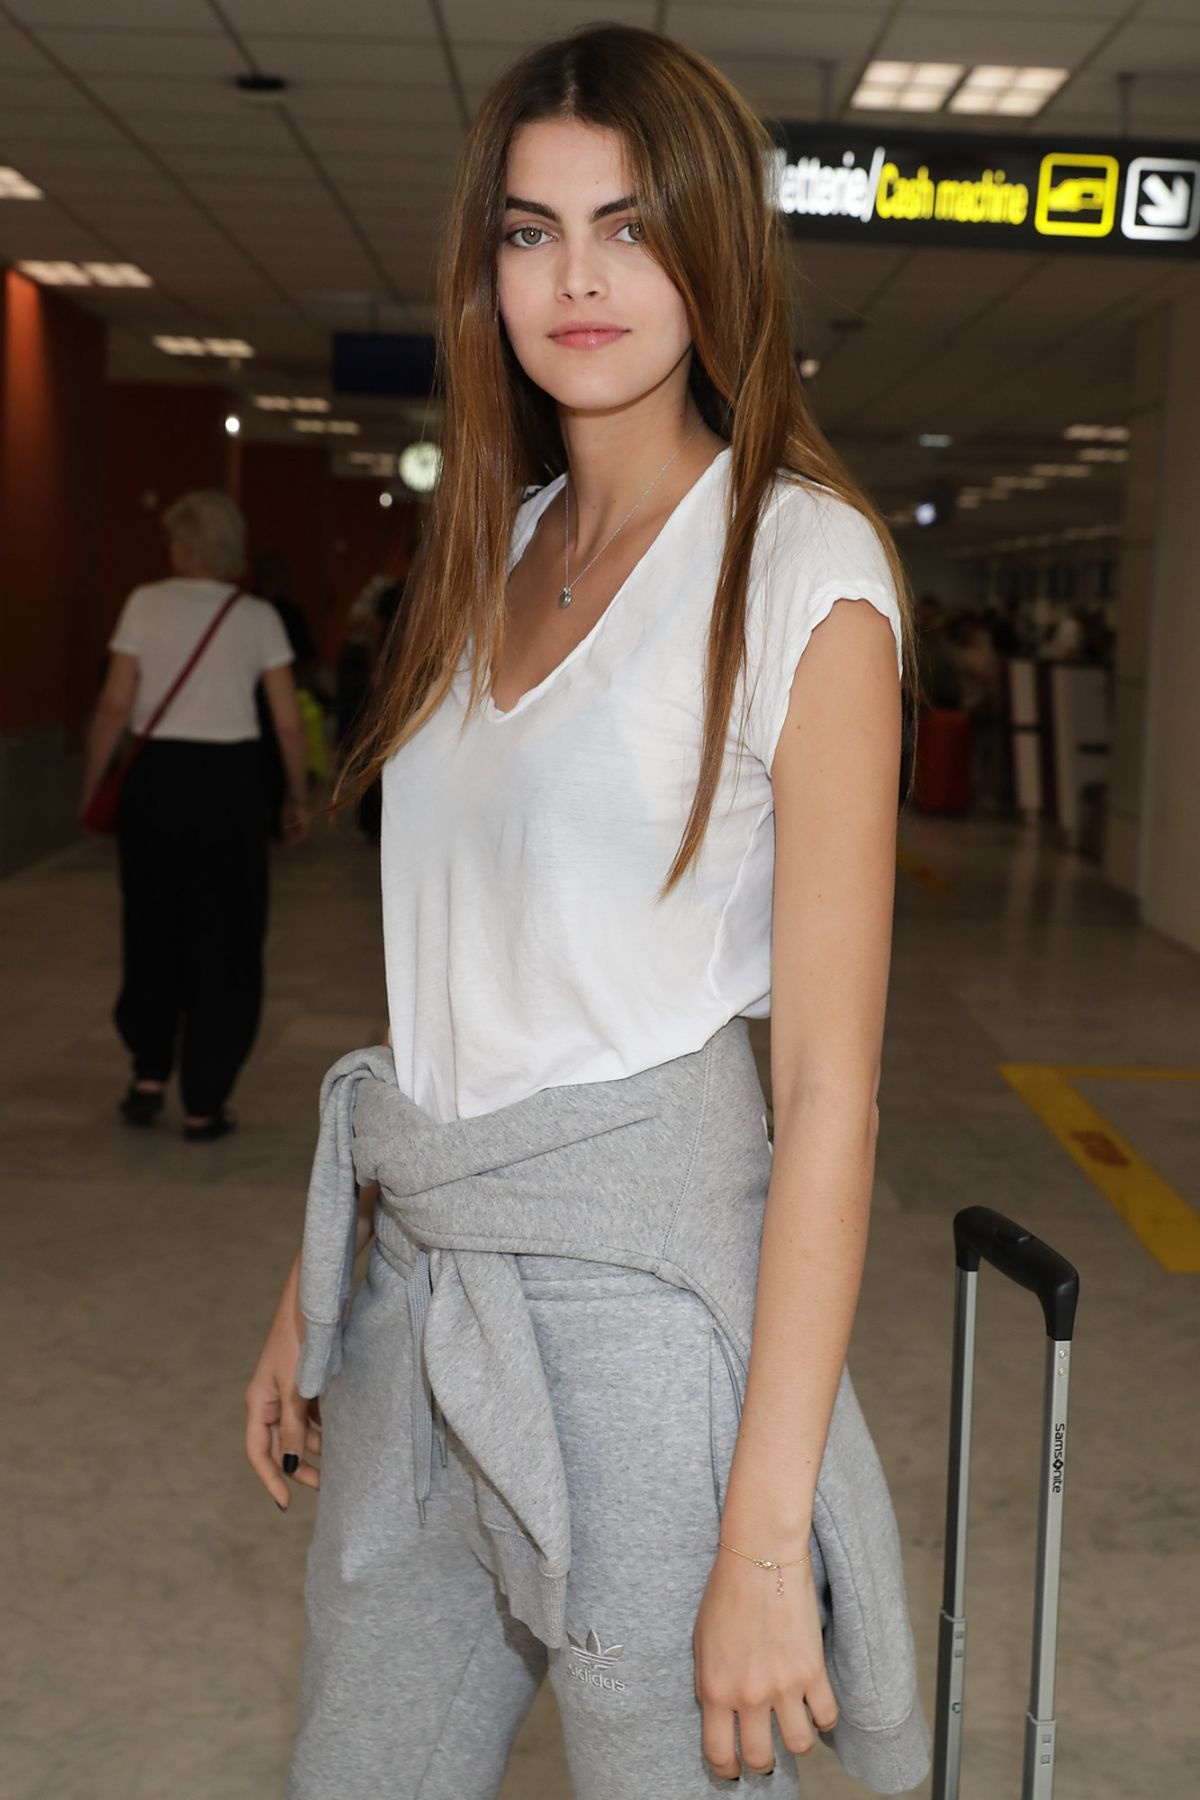 KAMILA HANSEN at Airport in Nice 05/29/2017